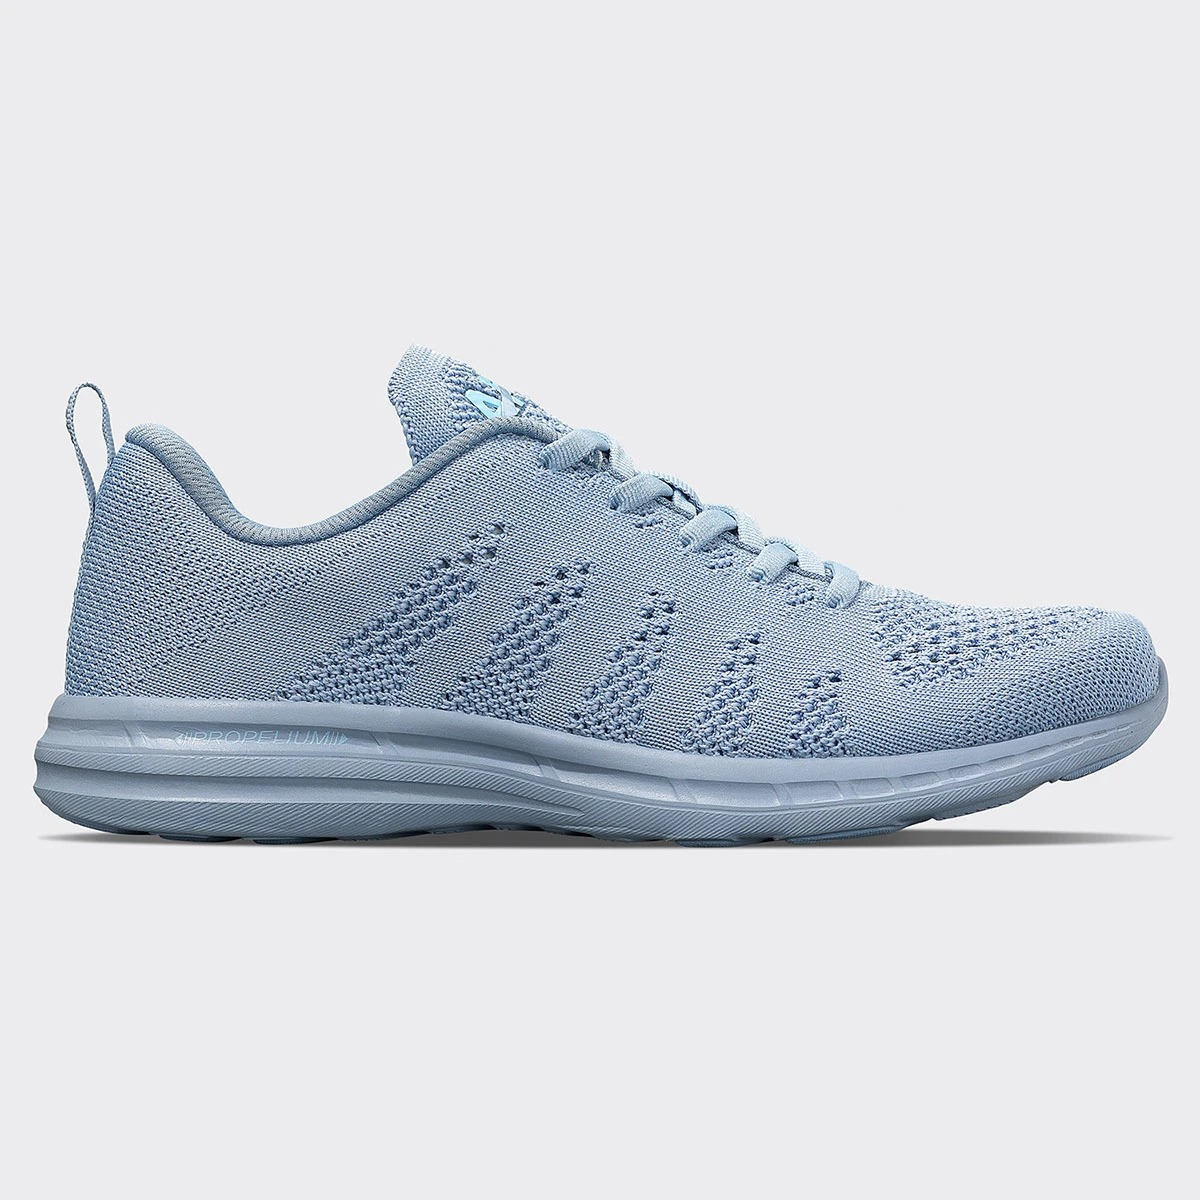 most comfortable sneakers - APL TechLoom Pro